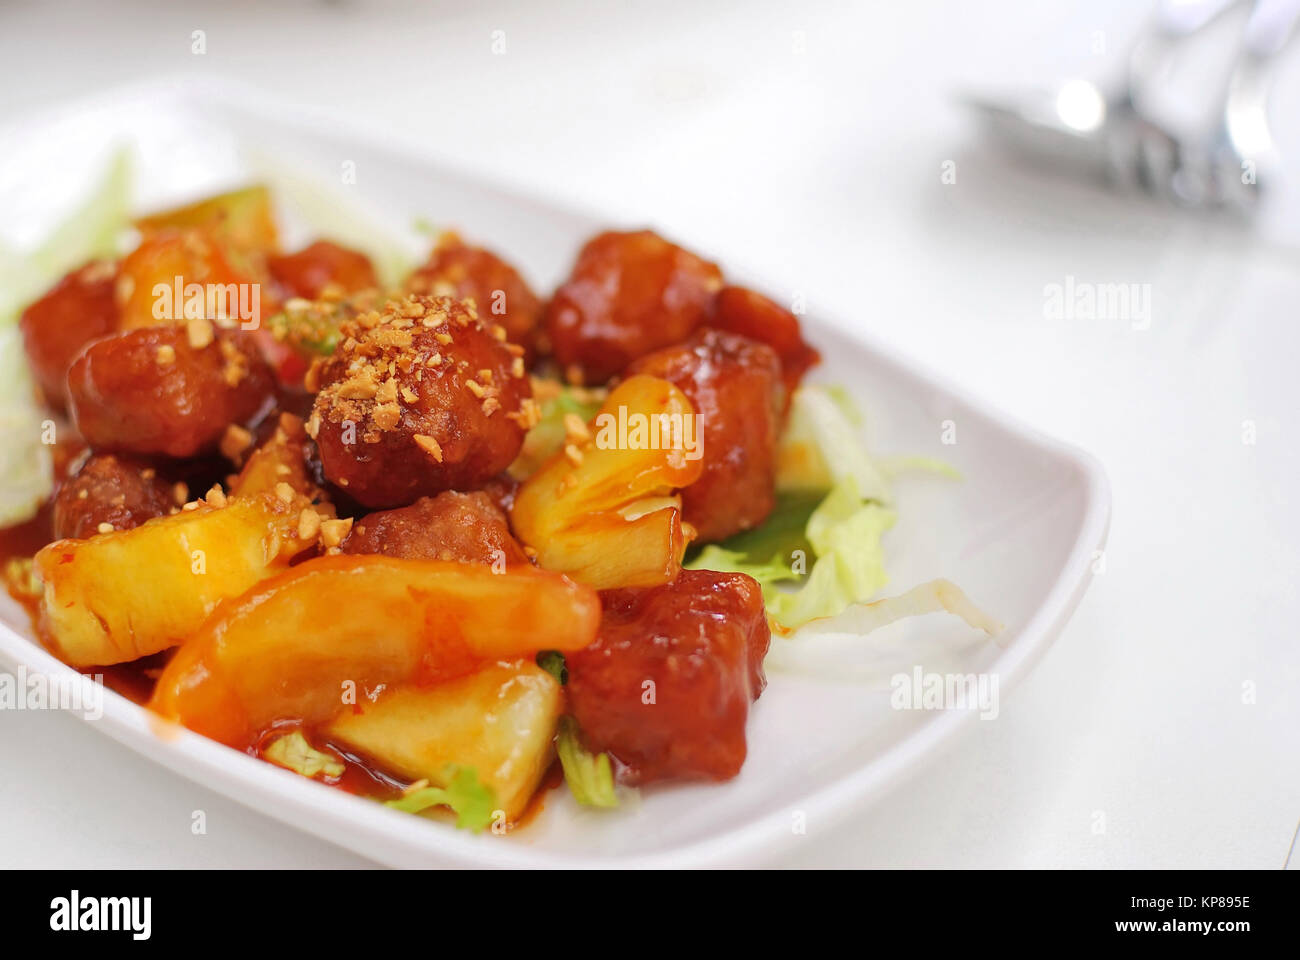 Chinese vegetarian sweet and sour pork cuisine. Ingredients include deep fried mock meat and peppers. Suitable for - Stock Image